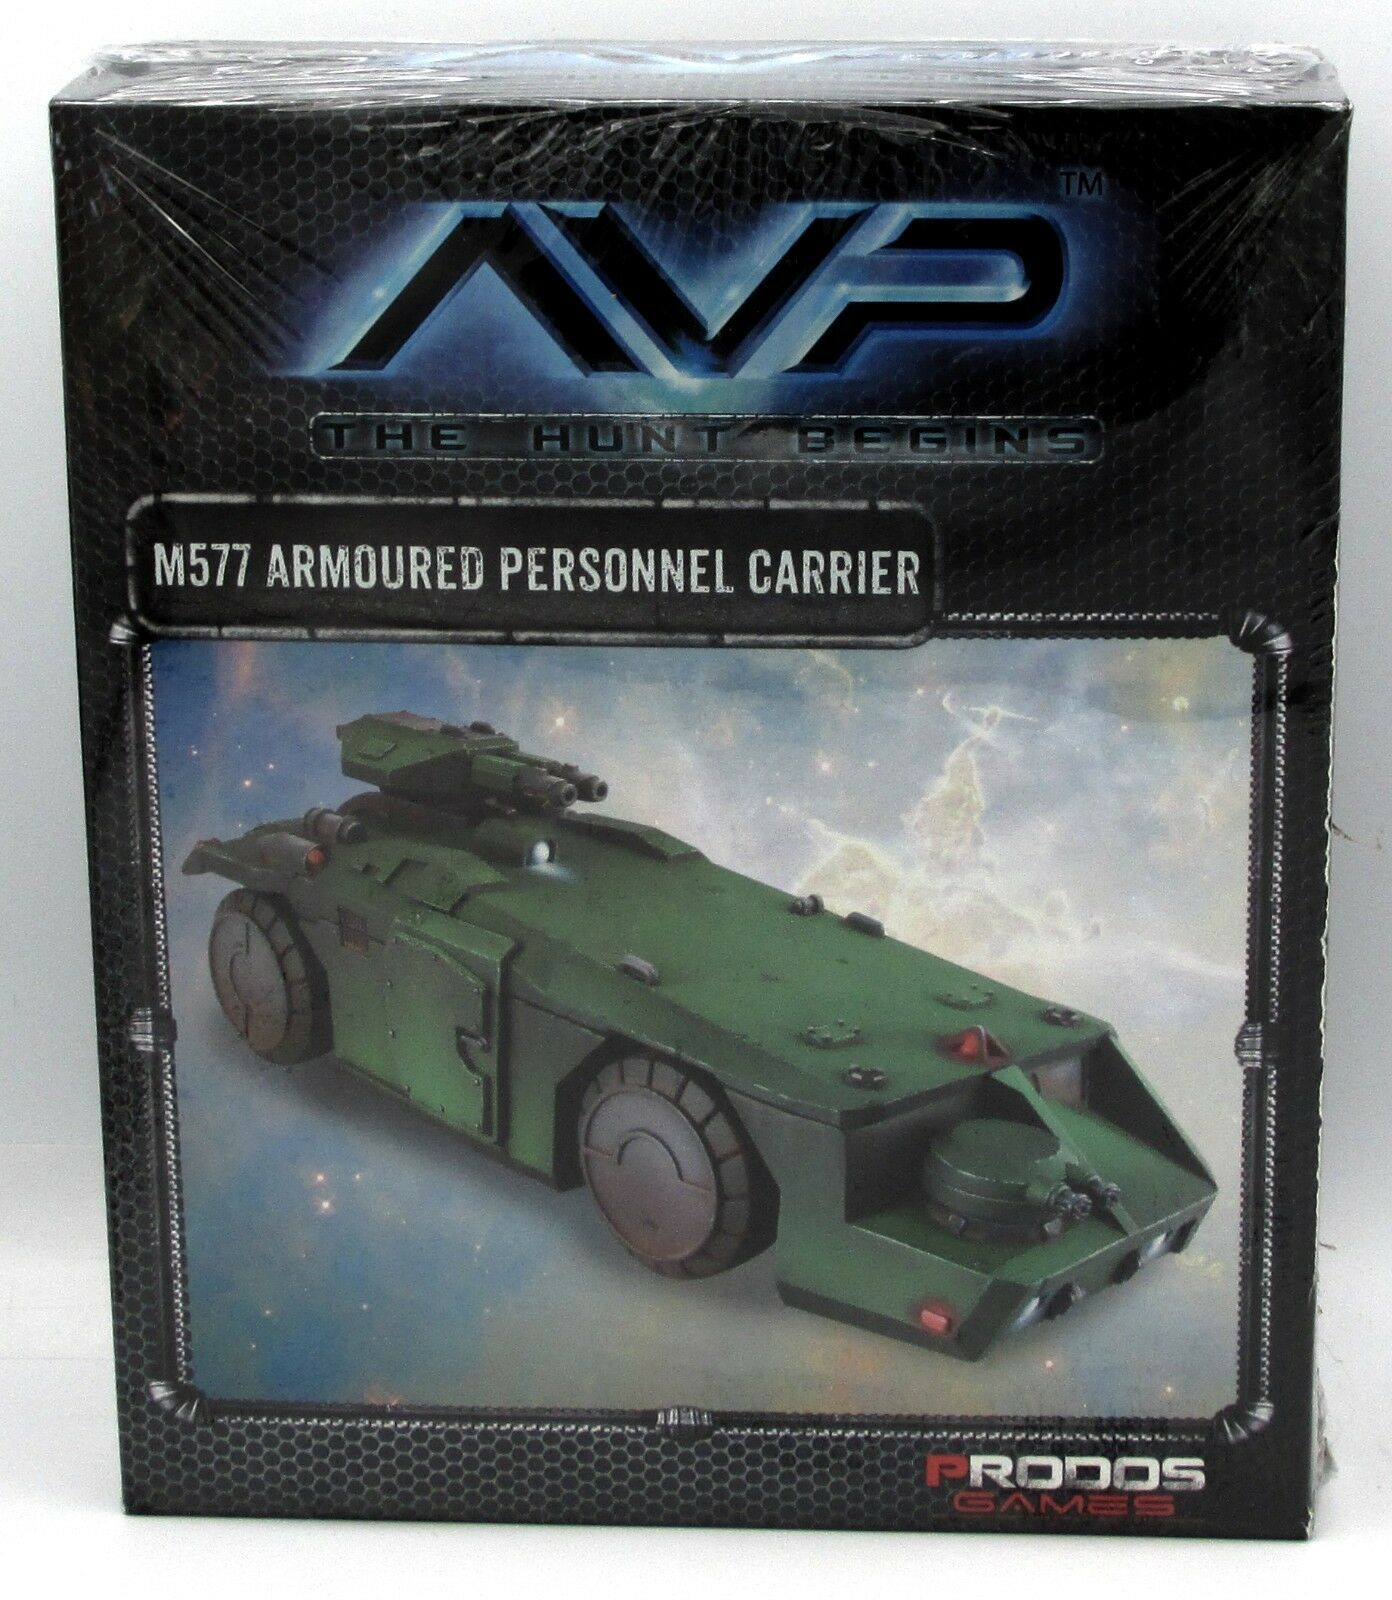 Pic201004 avp m577 gepanzerte personal carrier prodos spiele uscm marines apc